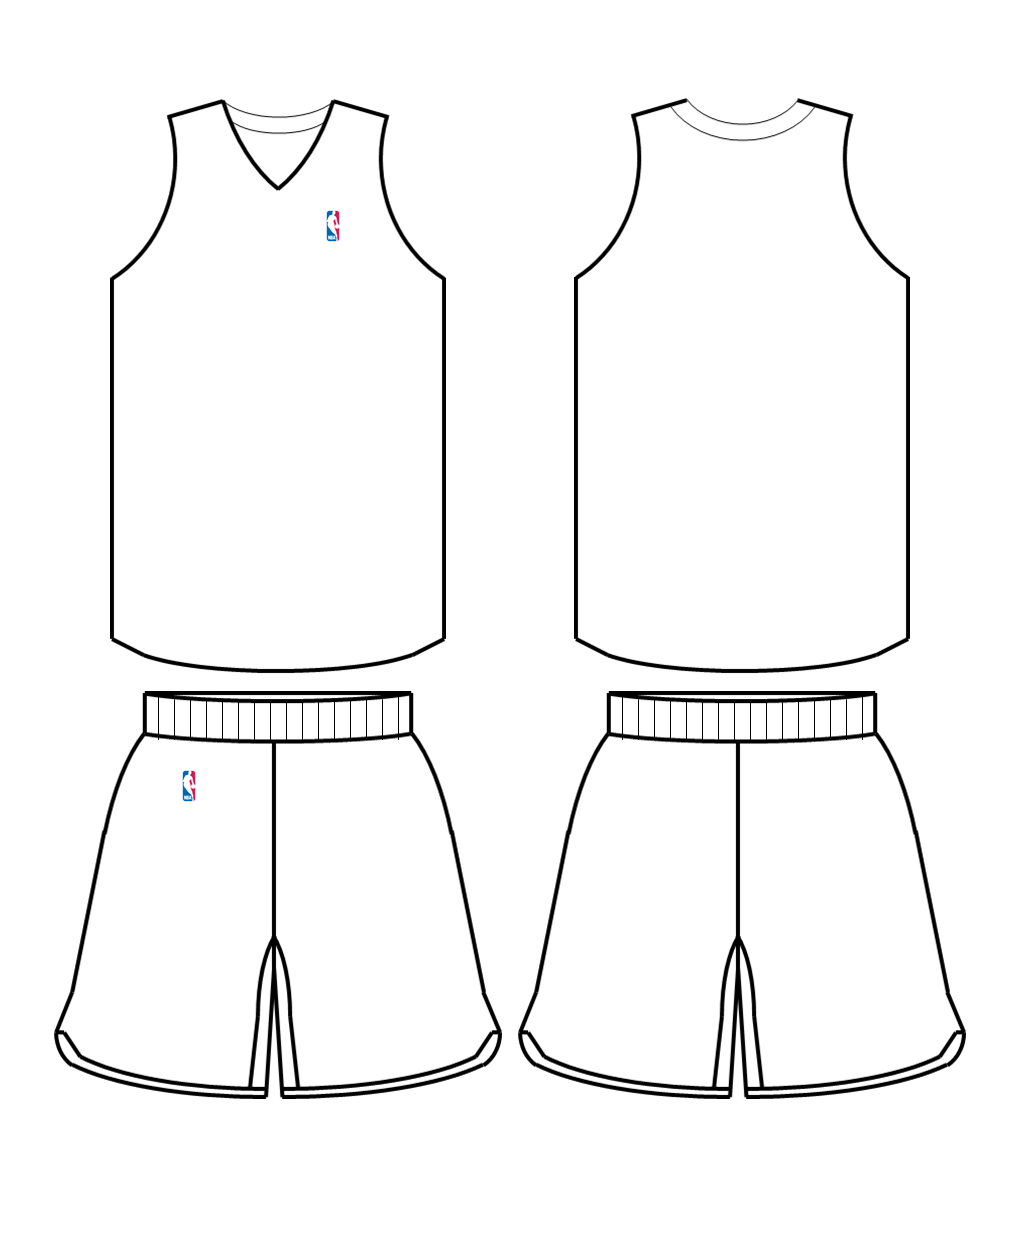 Free Jersey Template Download Free Clip Art Free Clip Art On Clipart Library